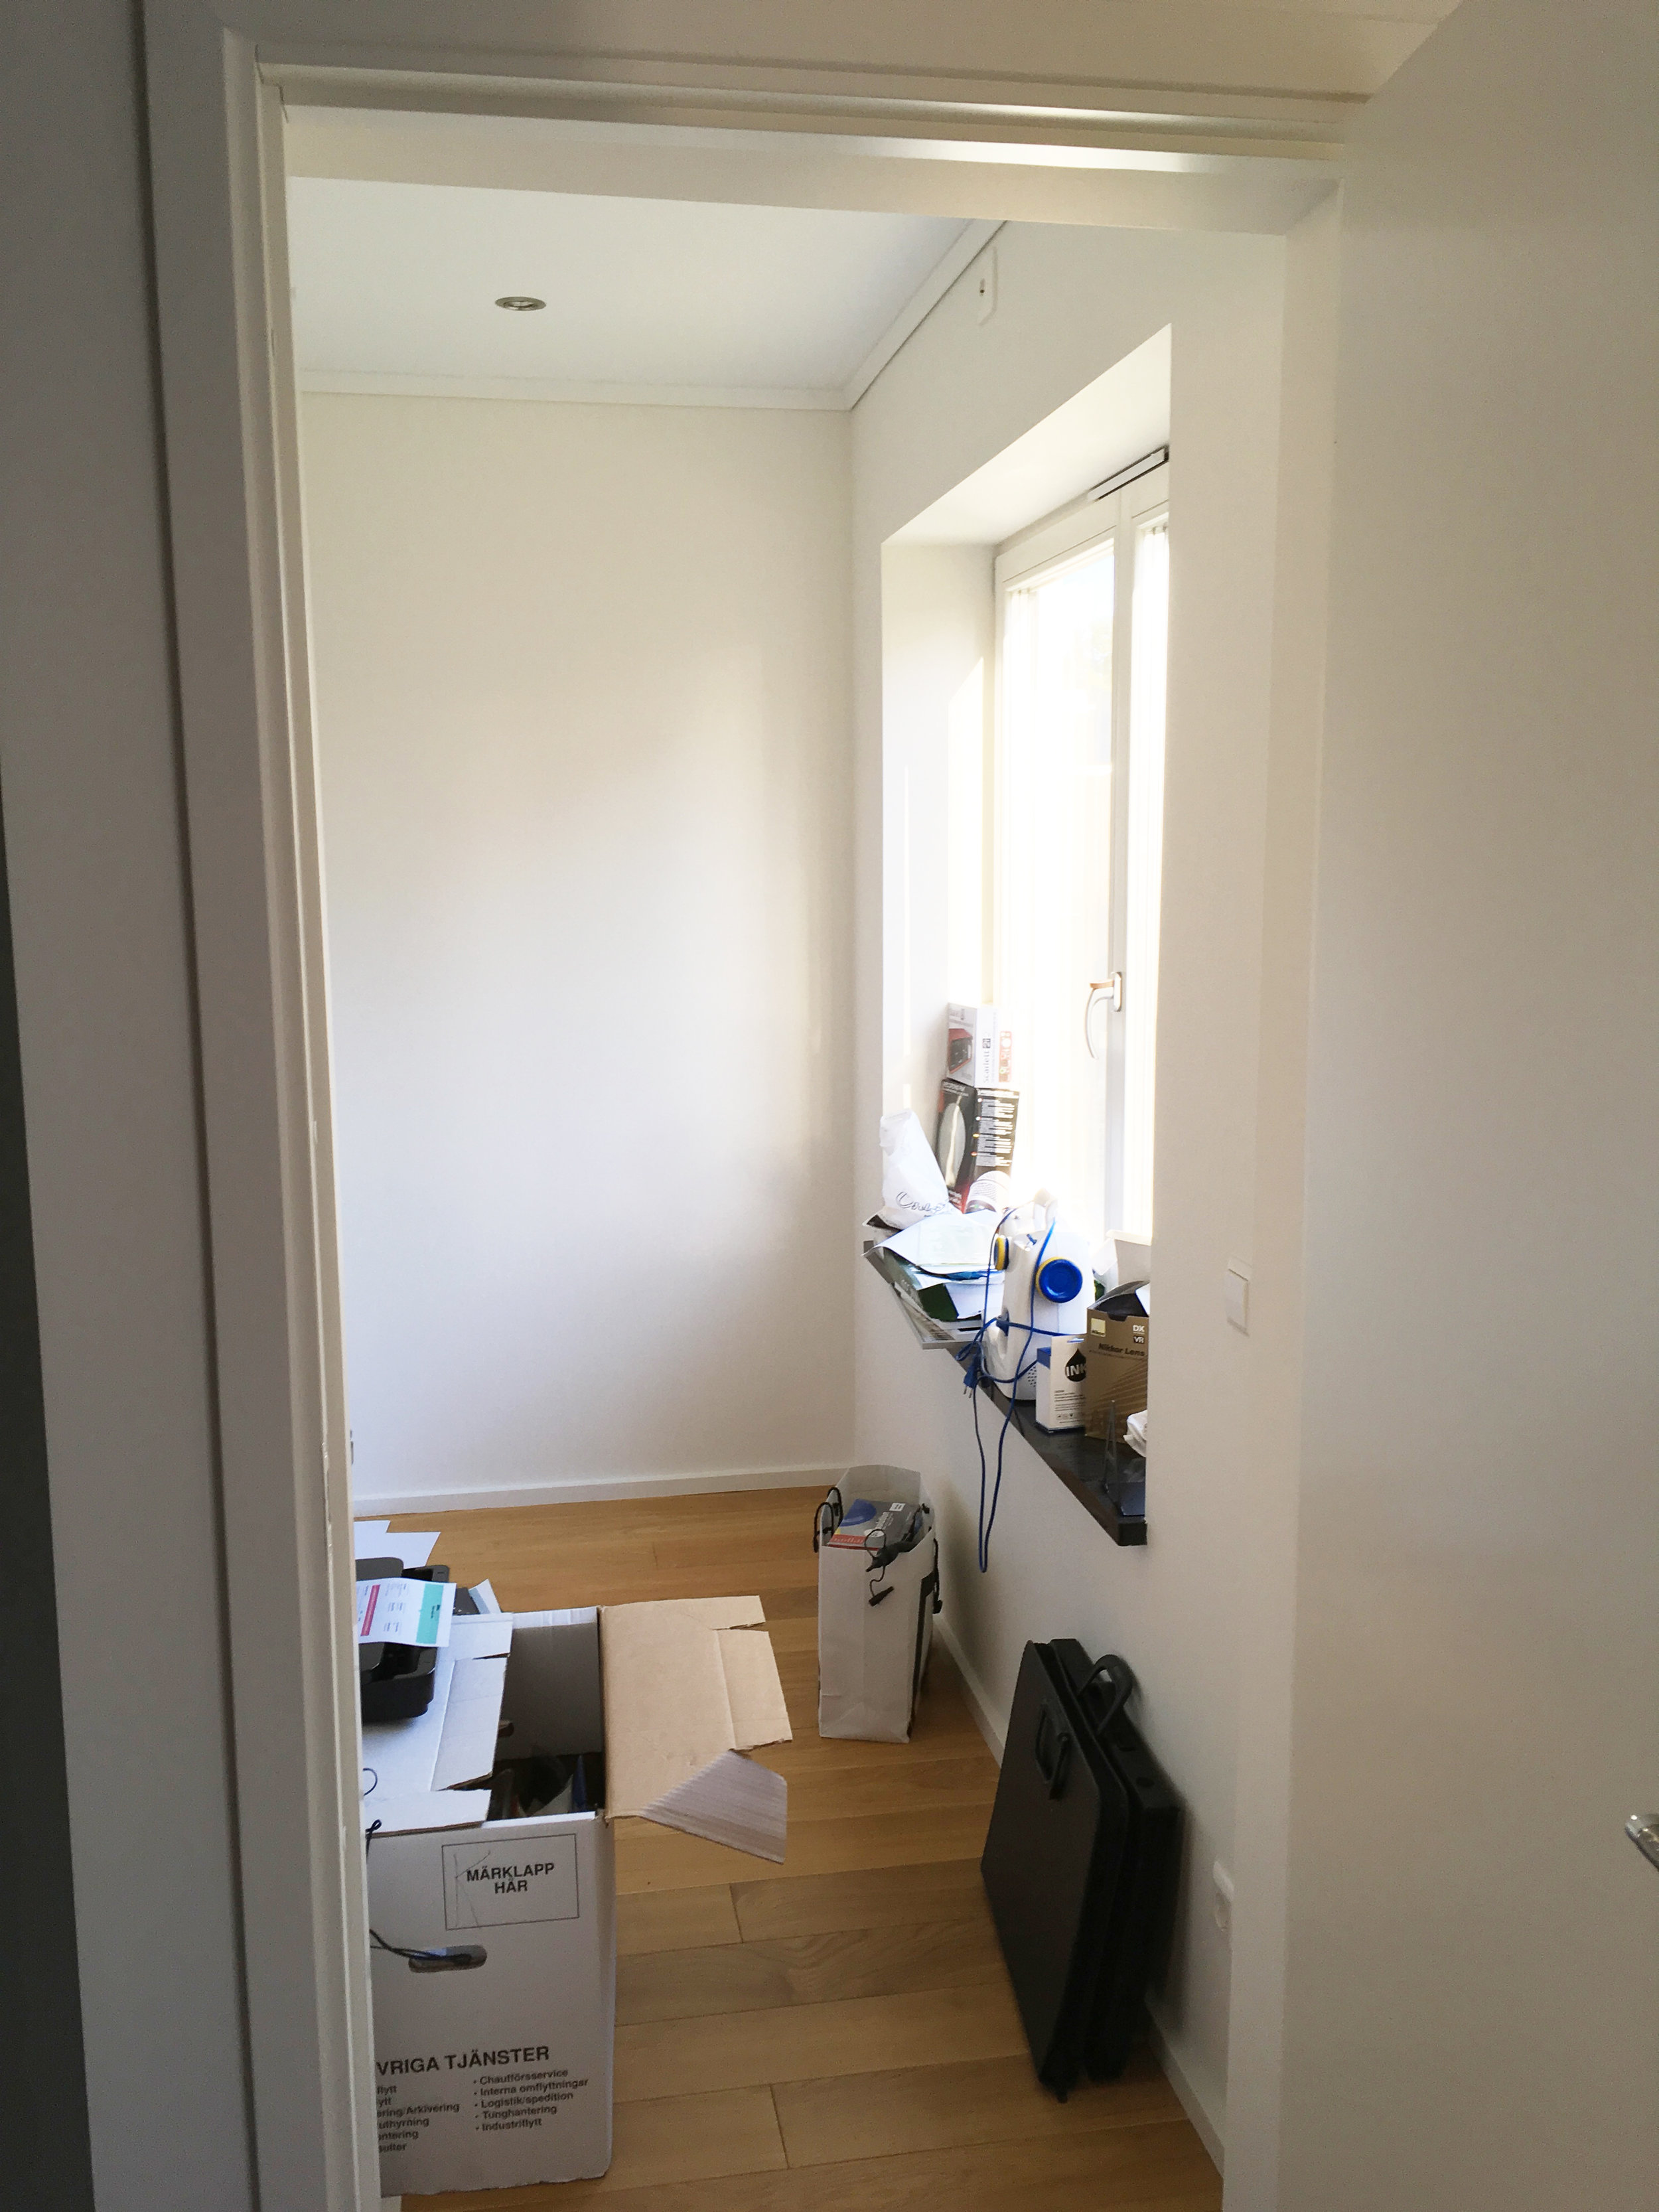 Here's the tiny space, that we've been using as a storage room. It's really small, but at least it's got a window!